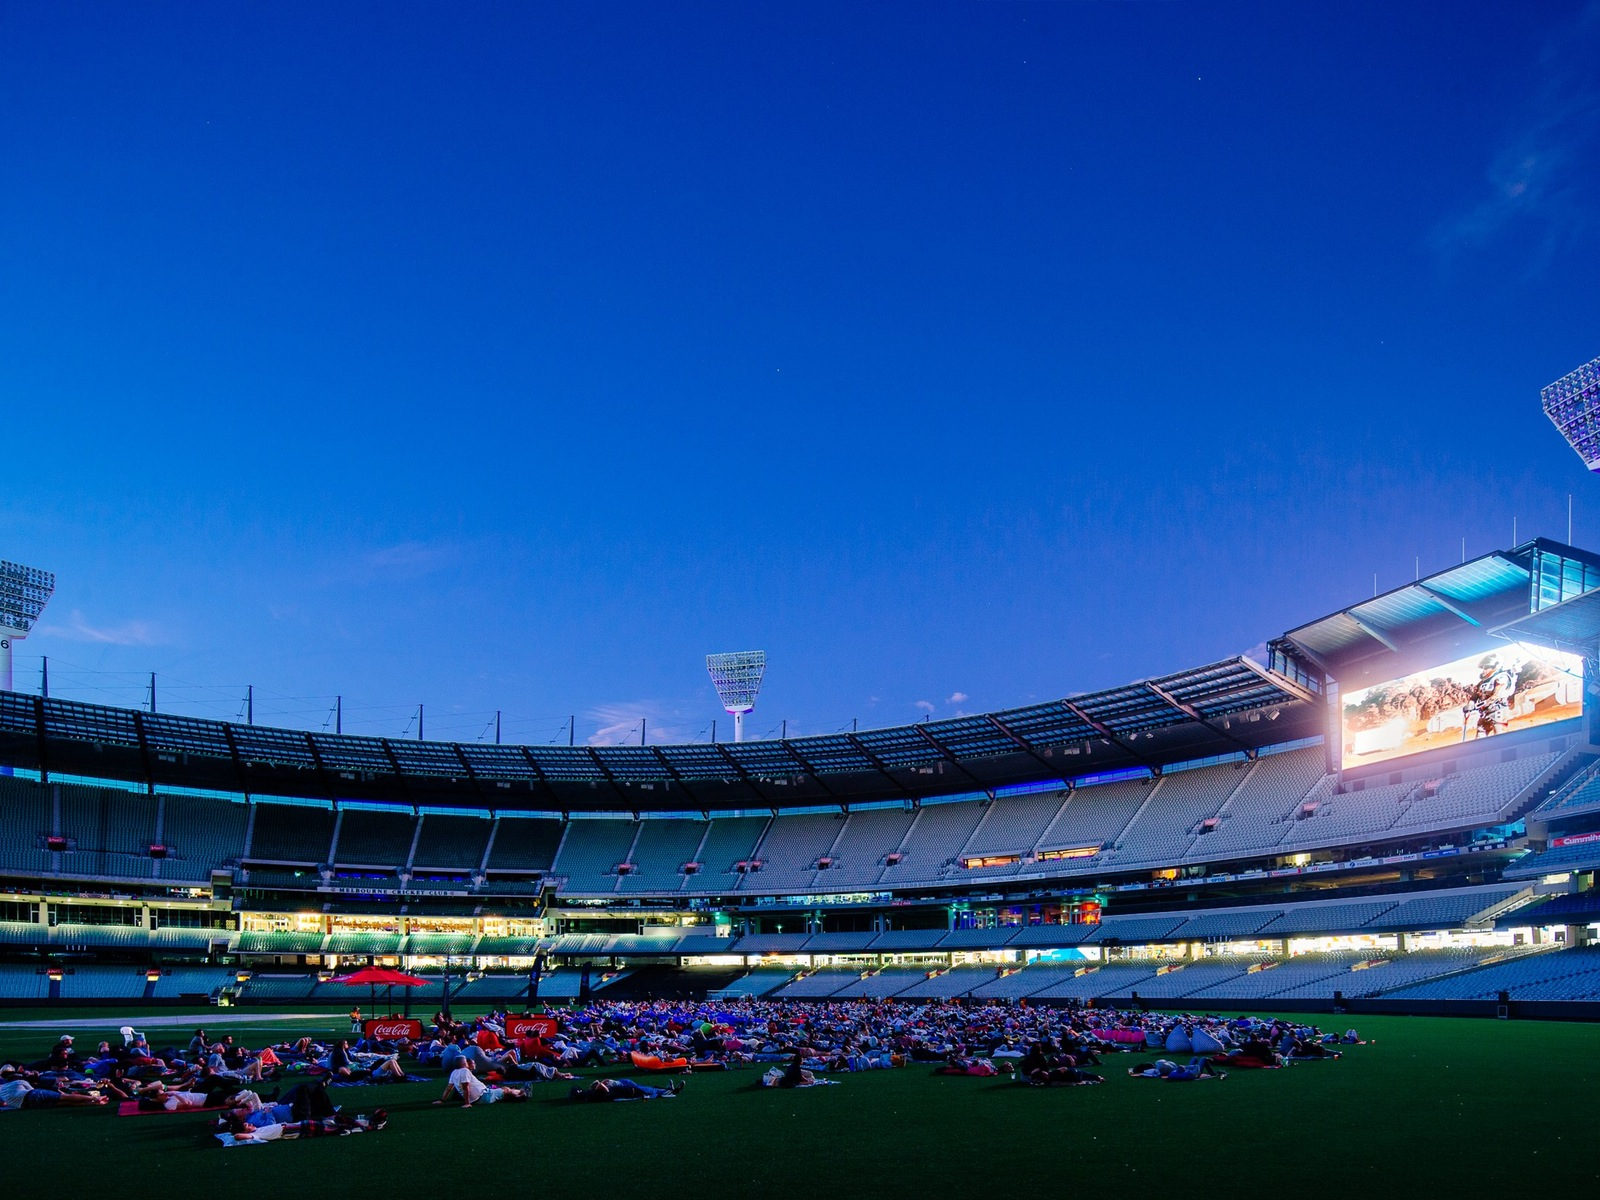 Cinema at the 'G